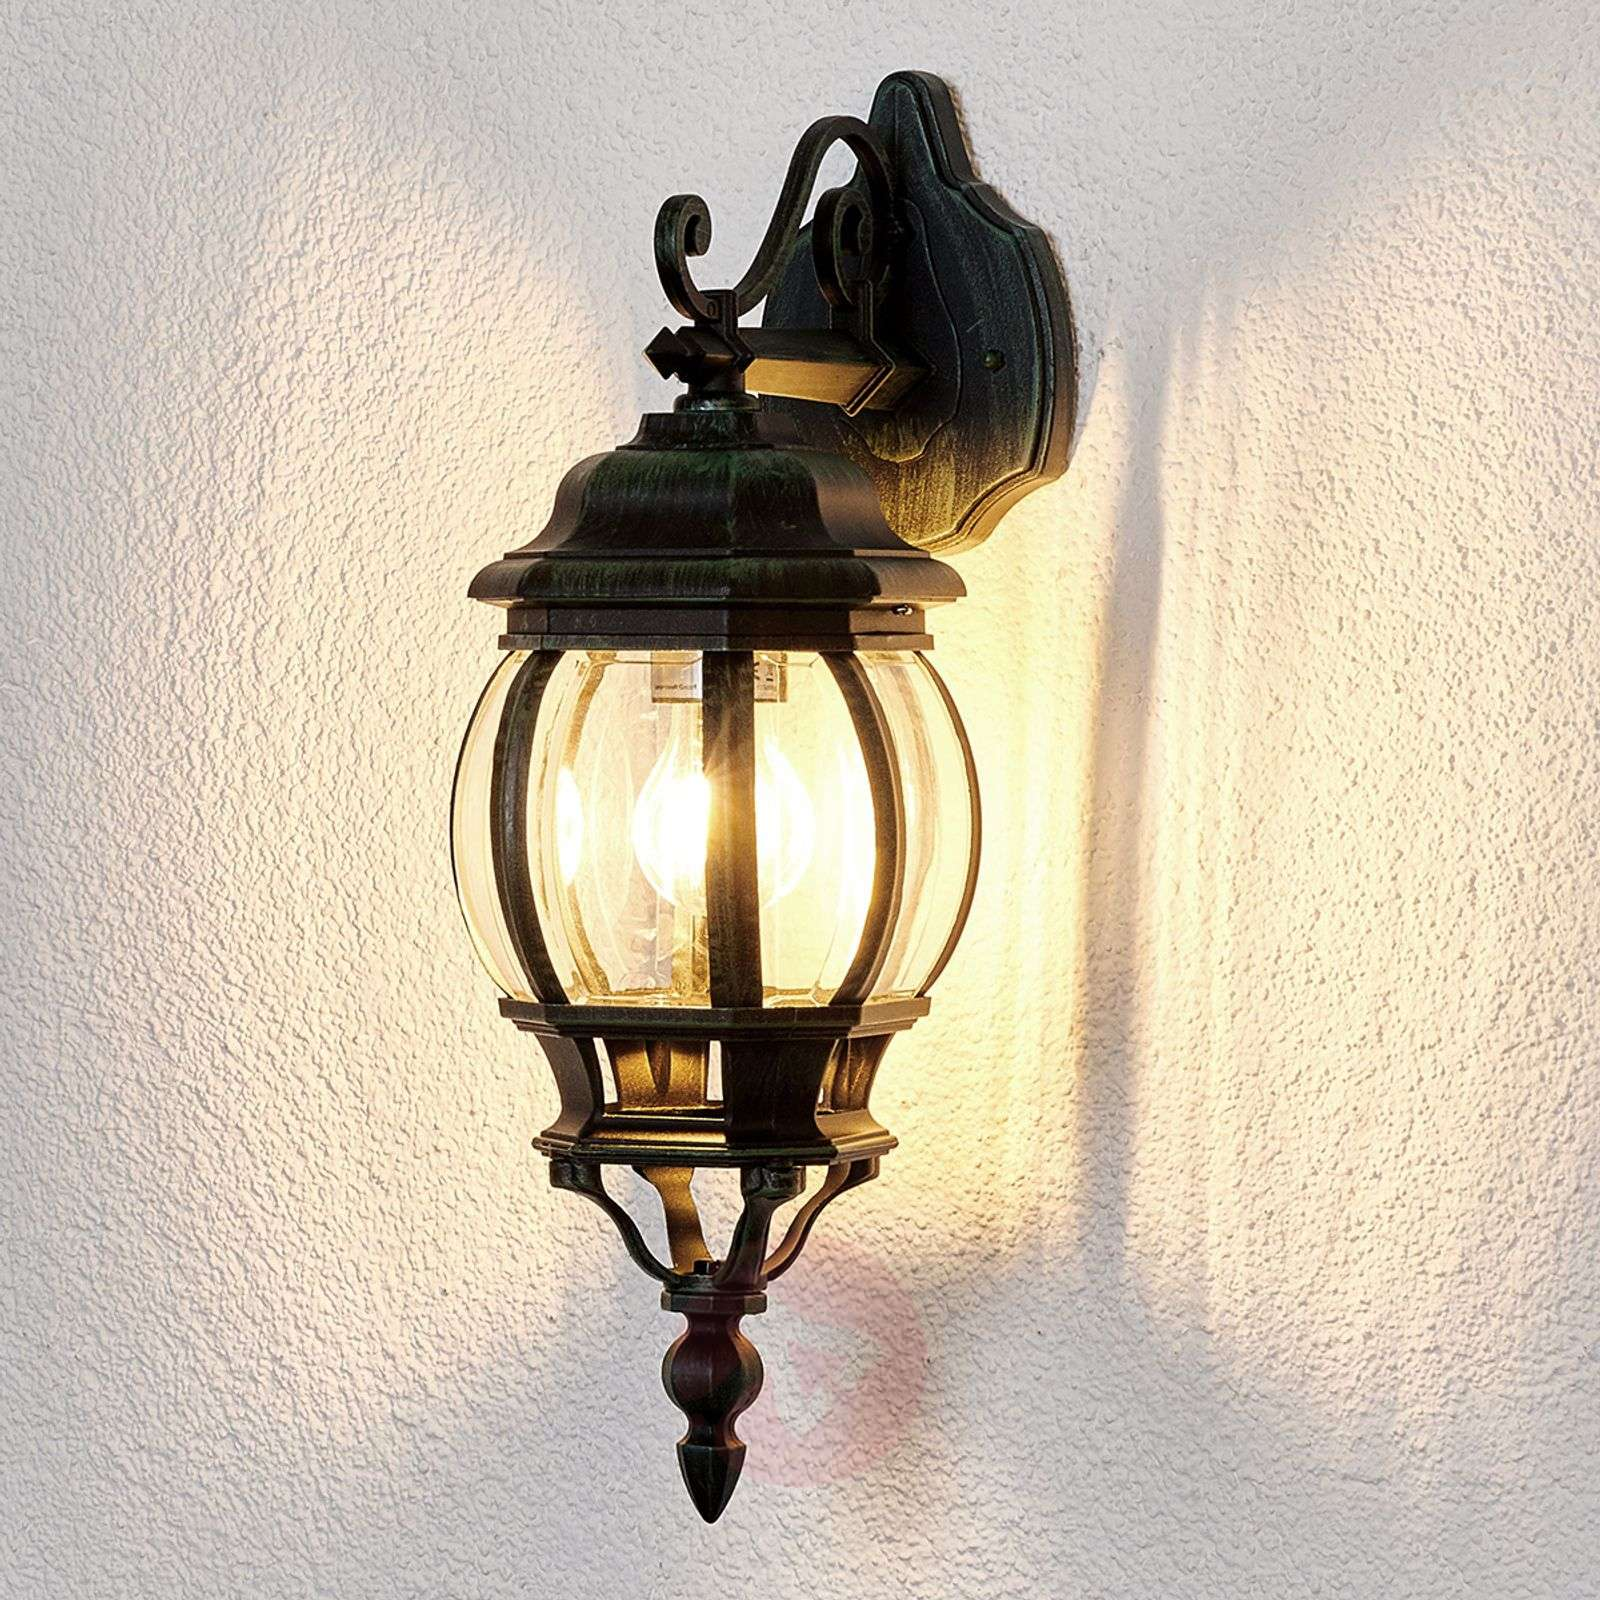 Vintage External Wall Lights : Theodor Outside Wall Light Antique Look Lights.co.uk